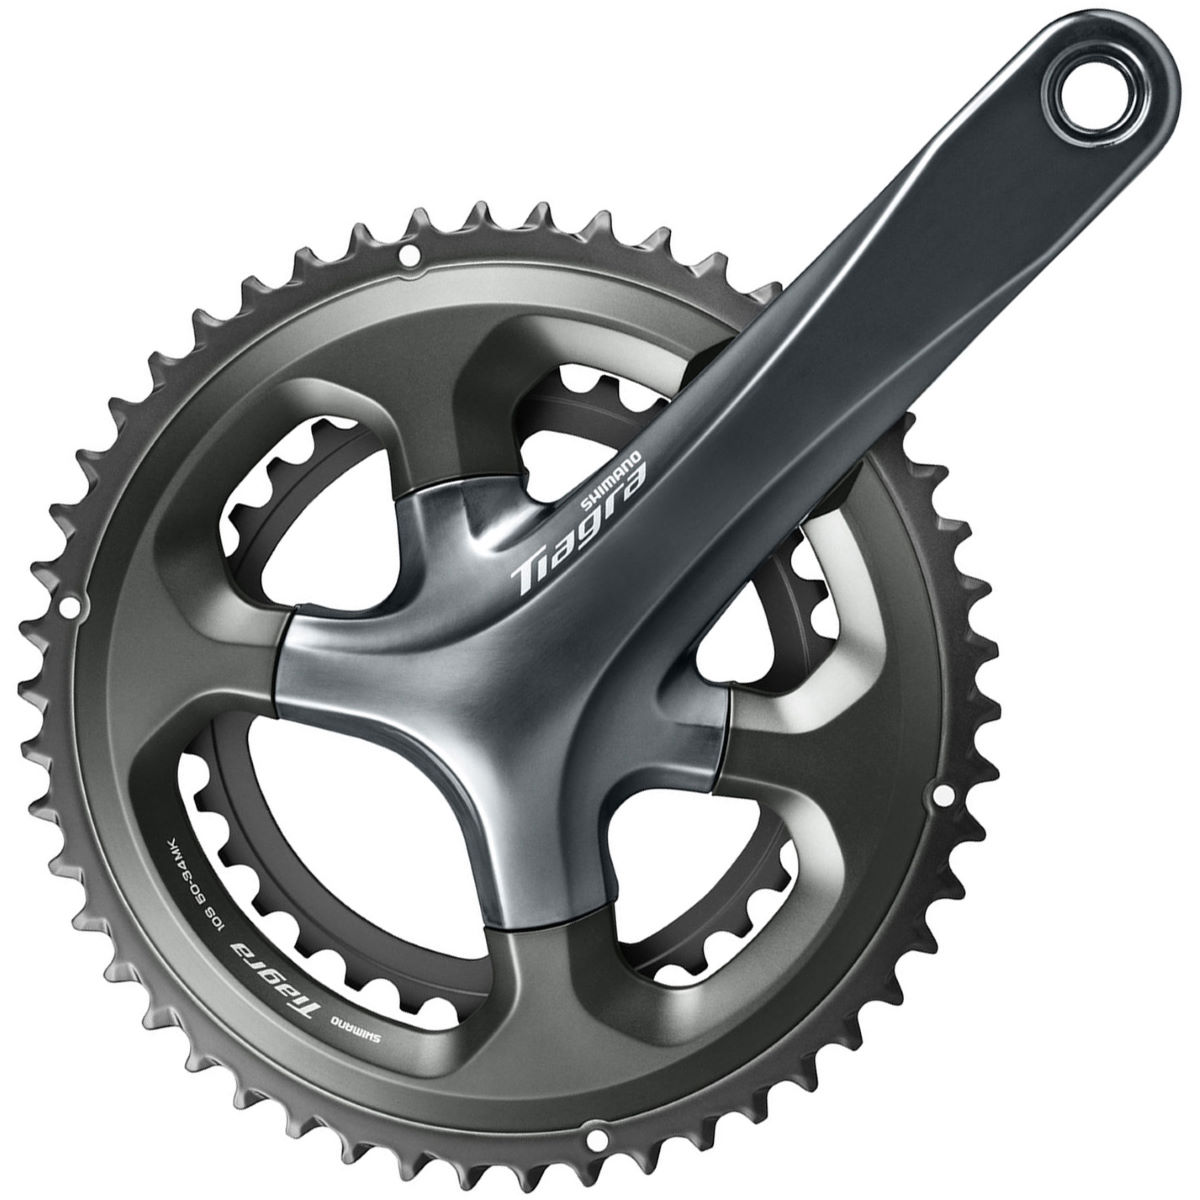 Shimano Tiagra 4700 10 Speed Chainset - 165 52.36 165mm Grey